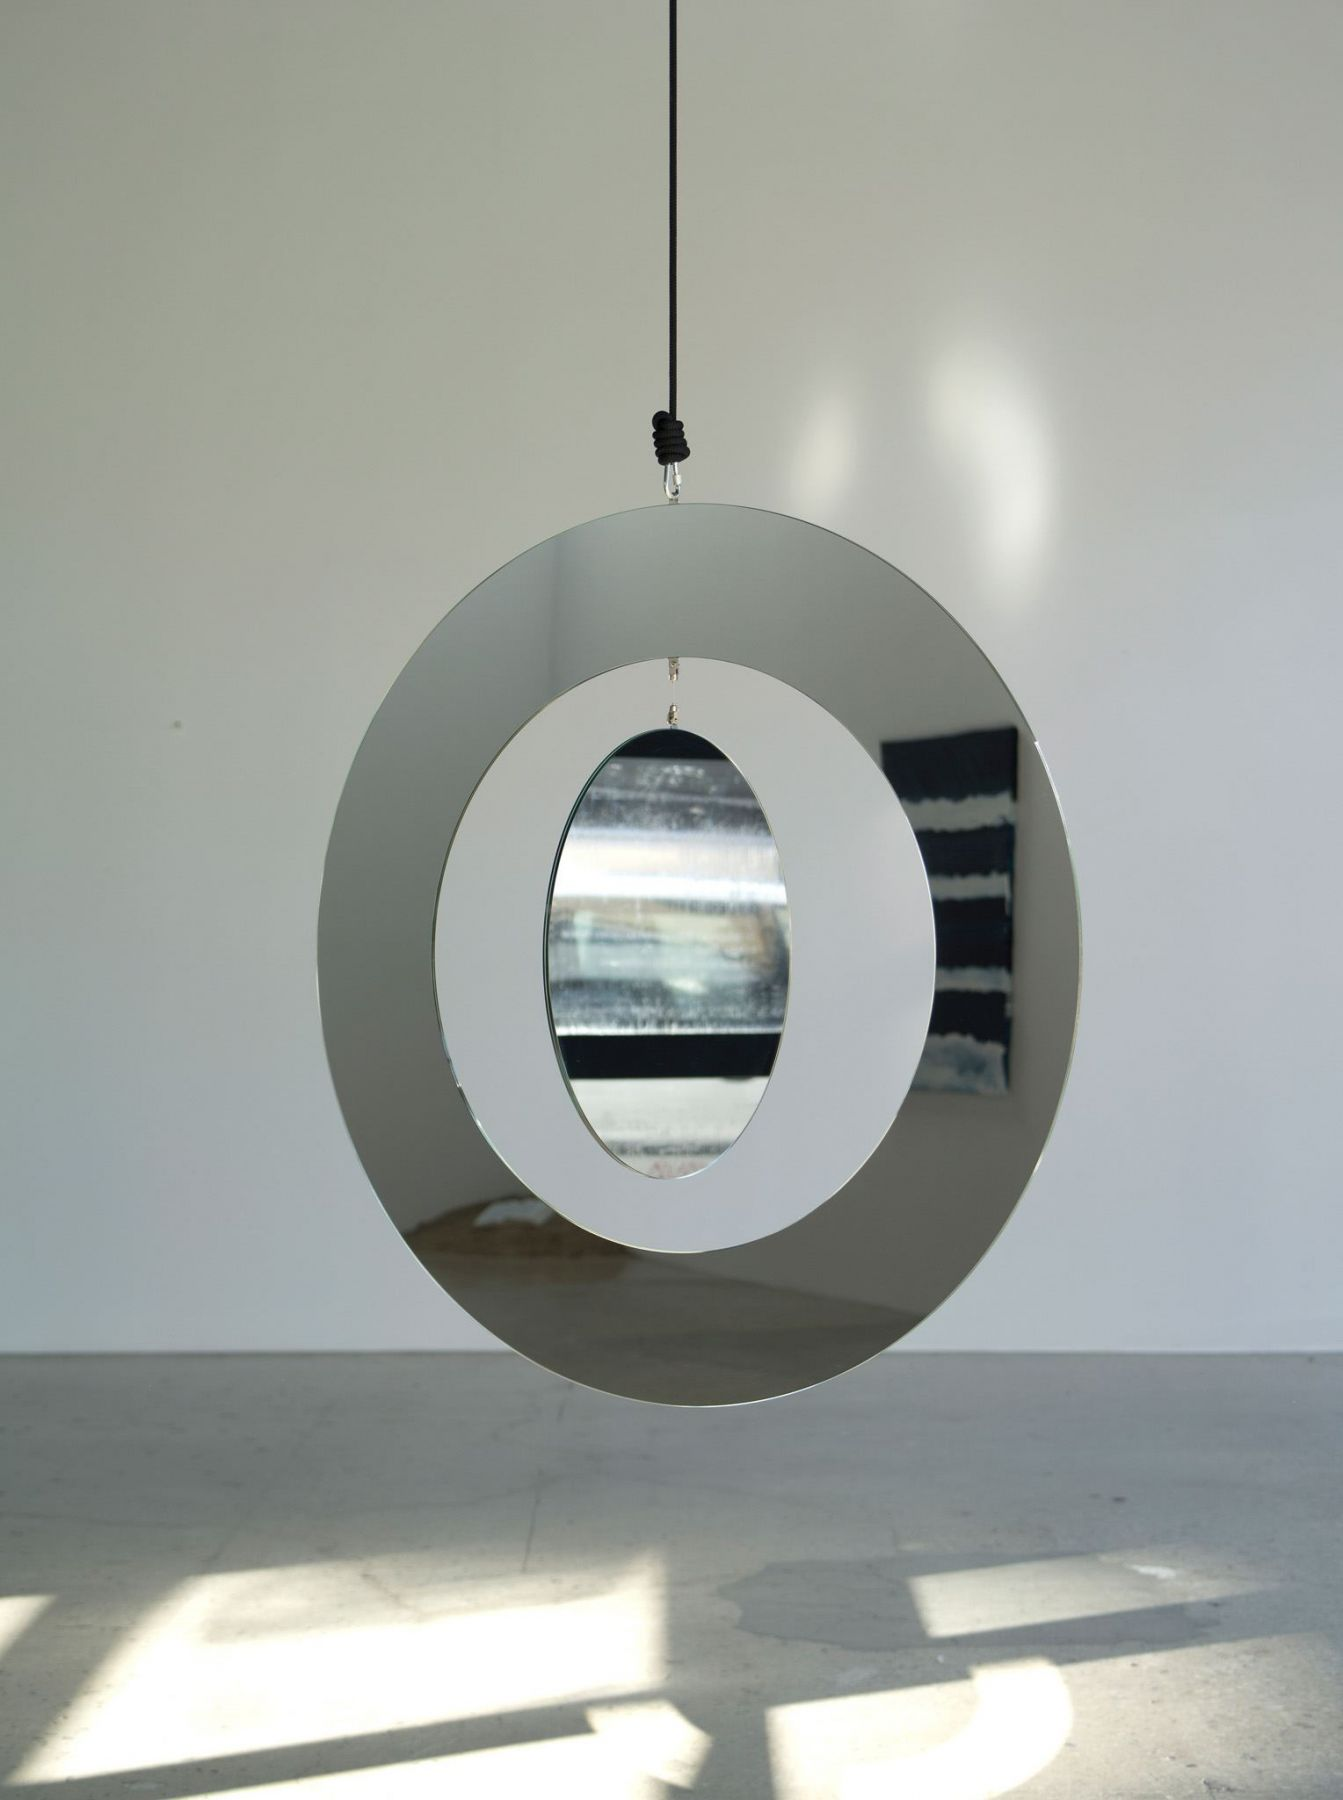 Jeppe Hein, Two in One Mirror Mobile, 2011